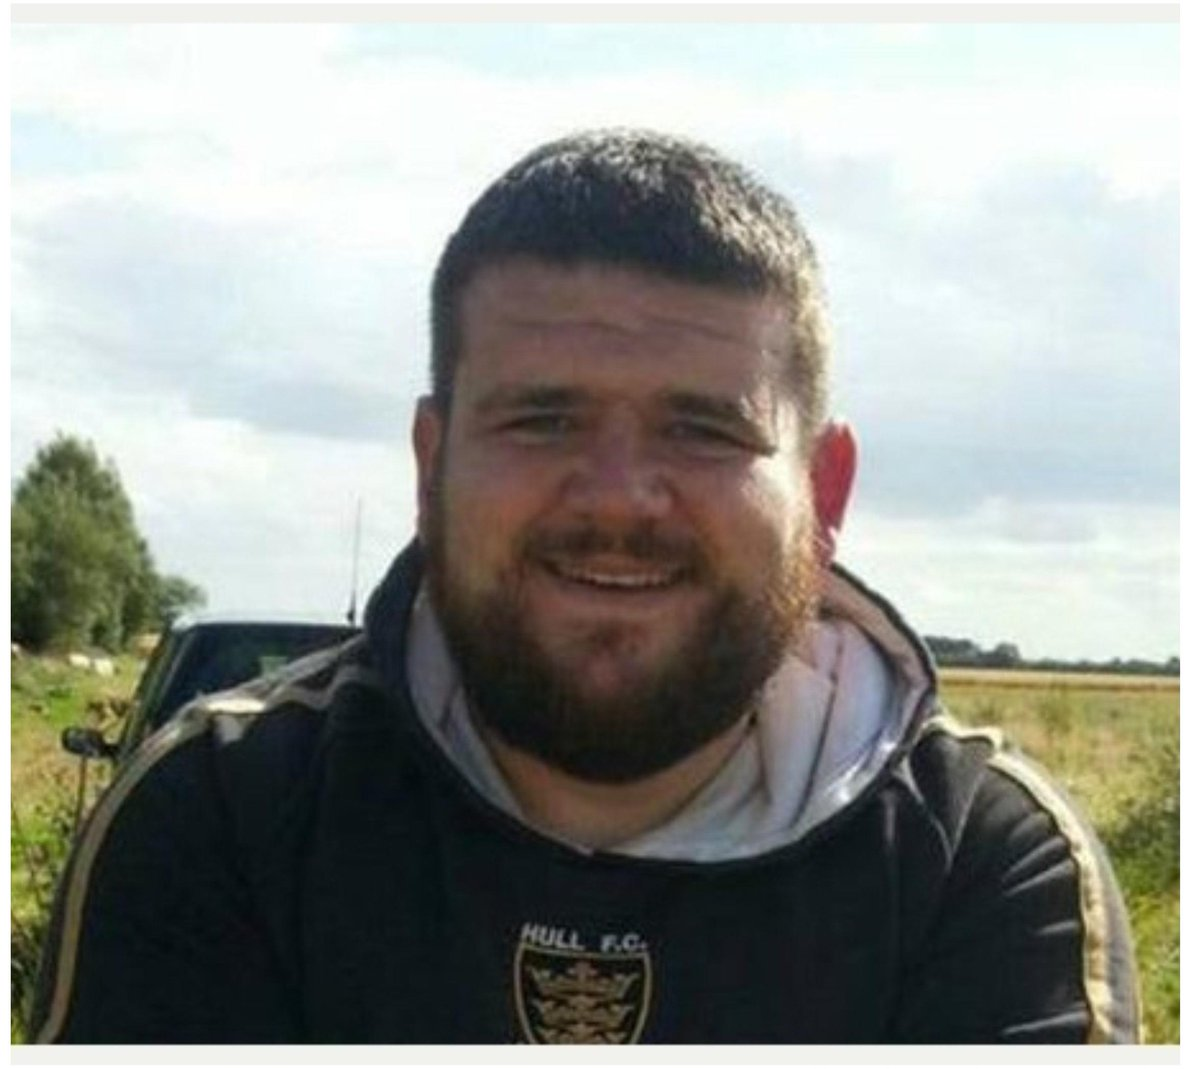 HULL FC FAN MISSING - Daniel Collinson (29) of Withernsea.  Missing since Monday 2 March. http://t.co/HHEqYHmcix http://t.co/MsGqRhyu4D